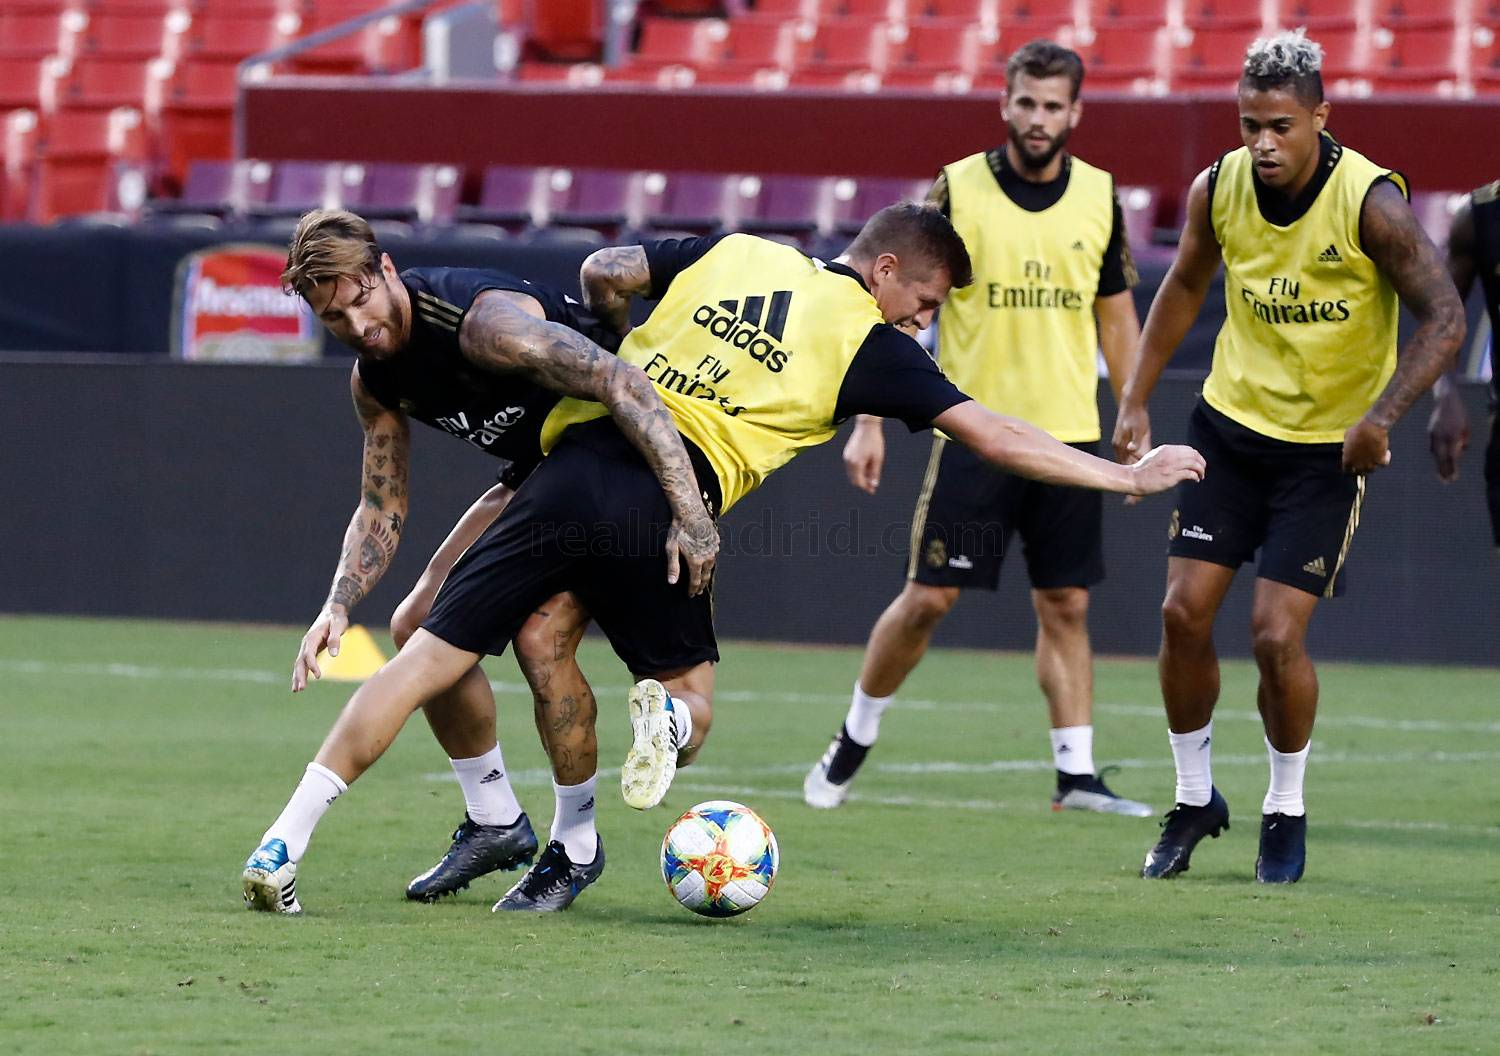 Real Madrid - Entrenamiento del Real Madrid en Washington - 22-07-2019